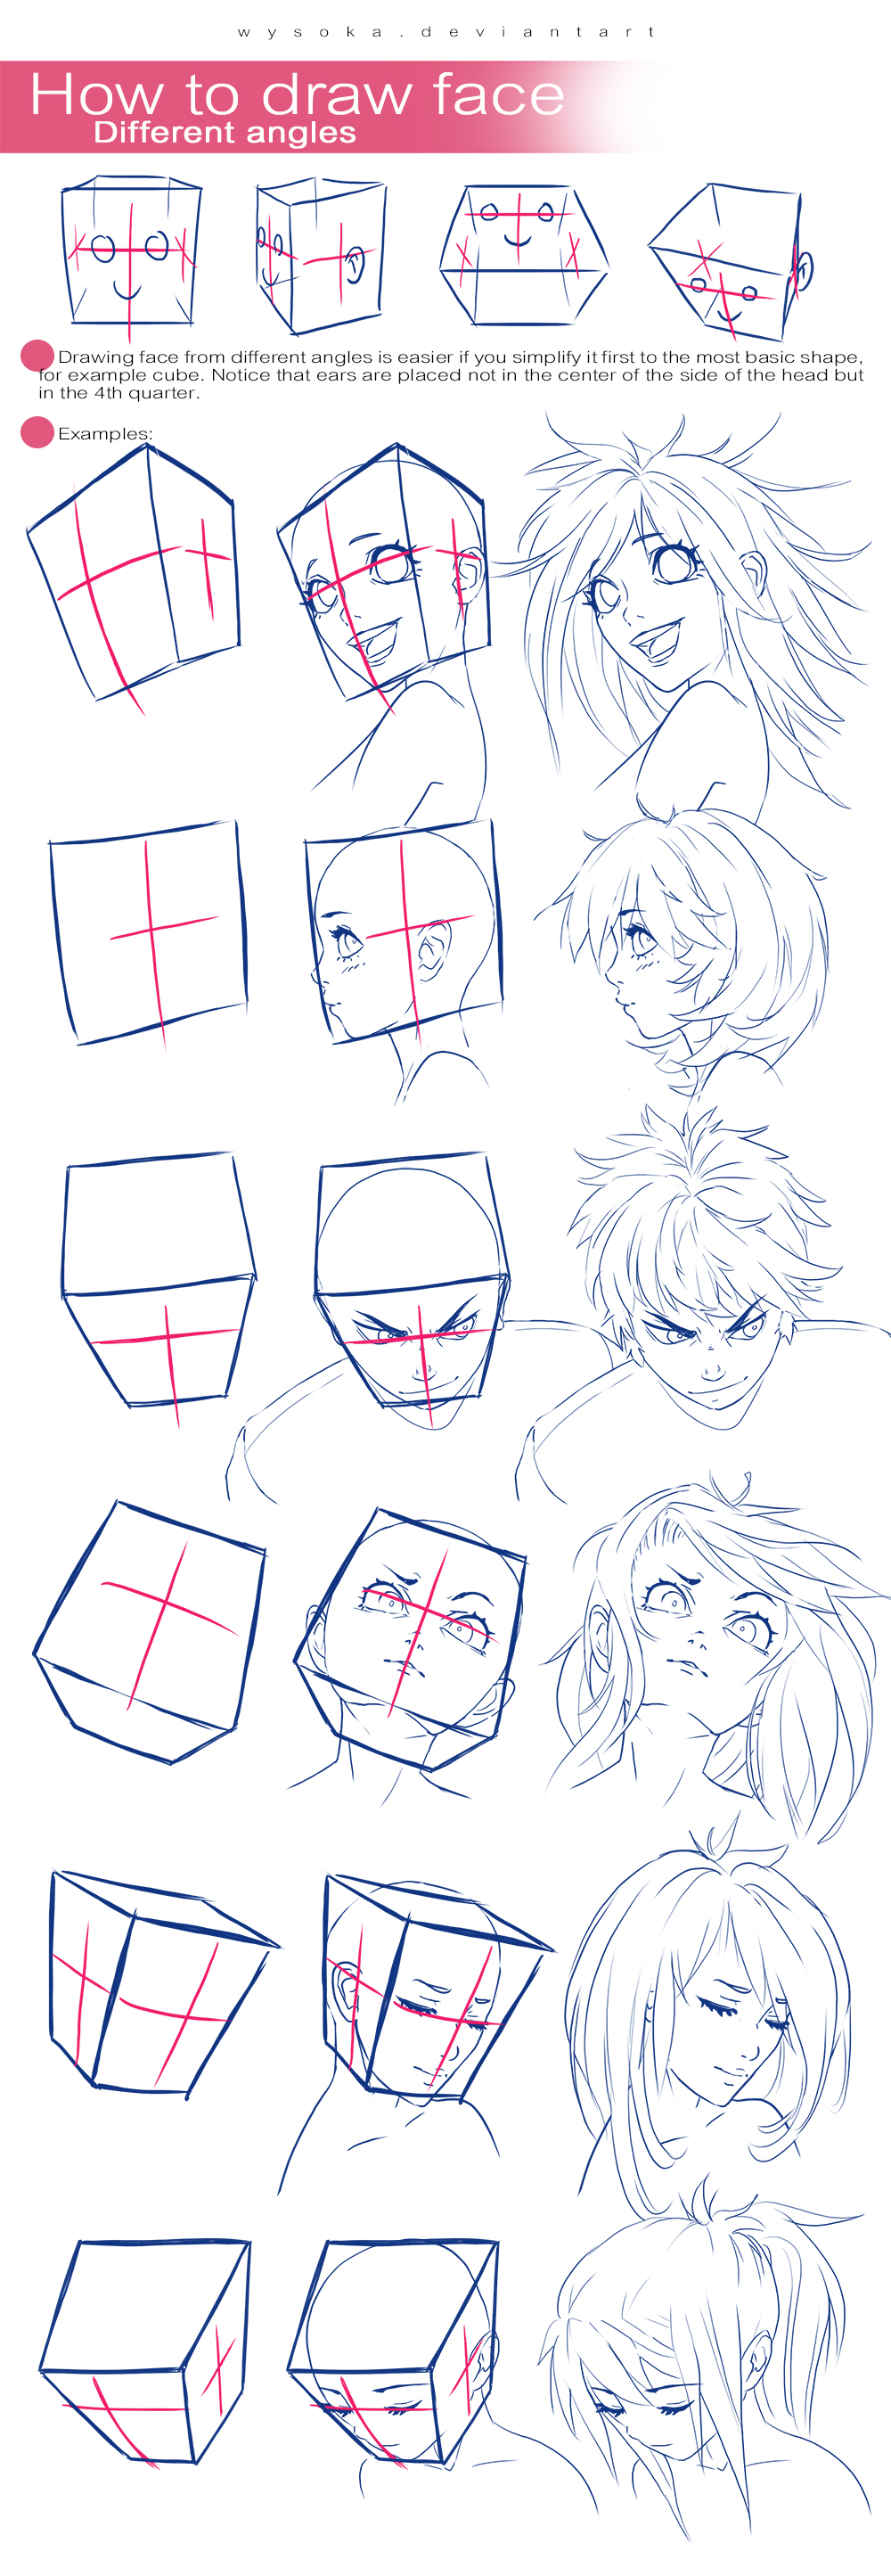 Scribble Drawing Face : How to draw face different angles by wysoka on deviantart